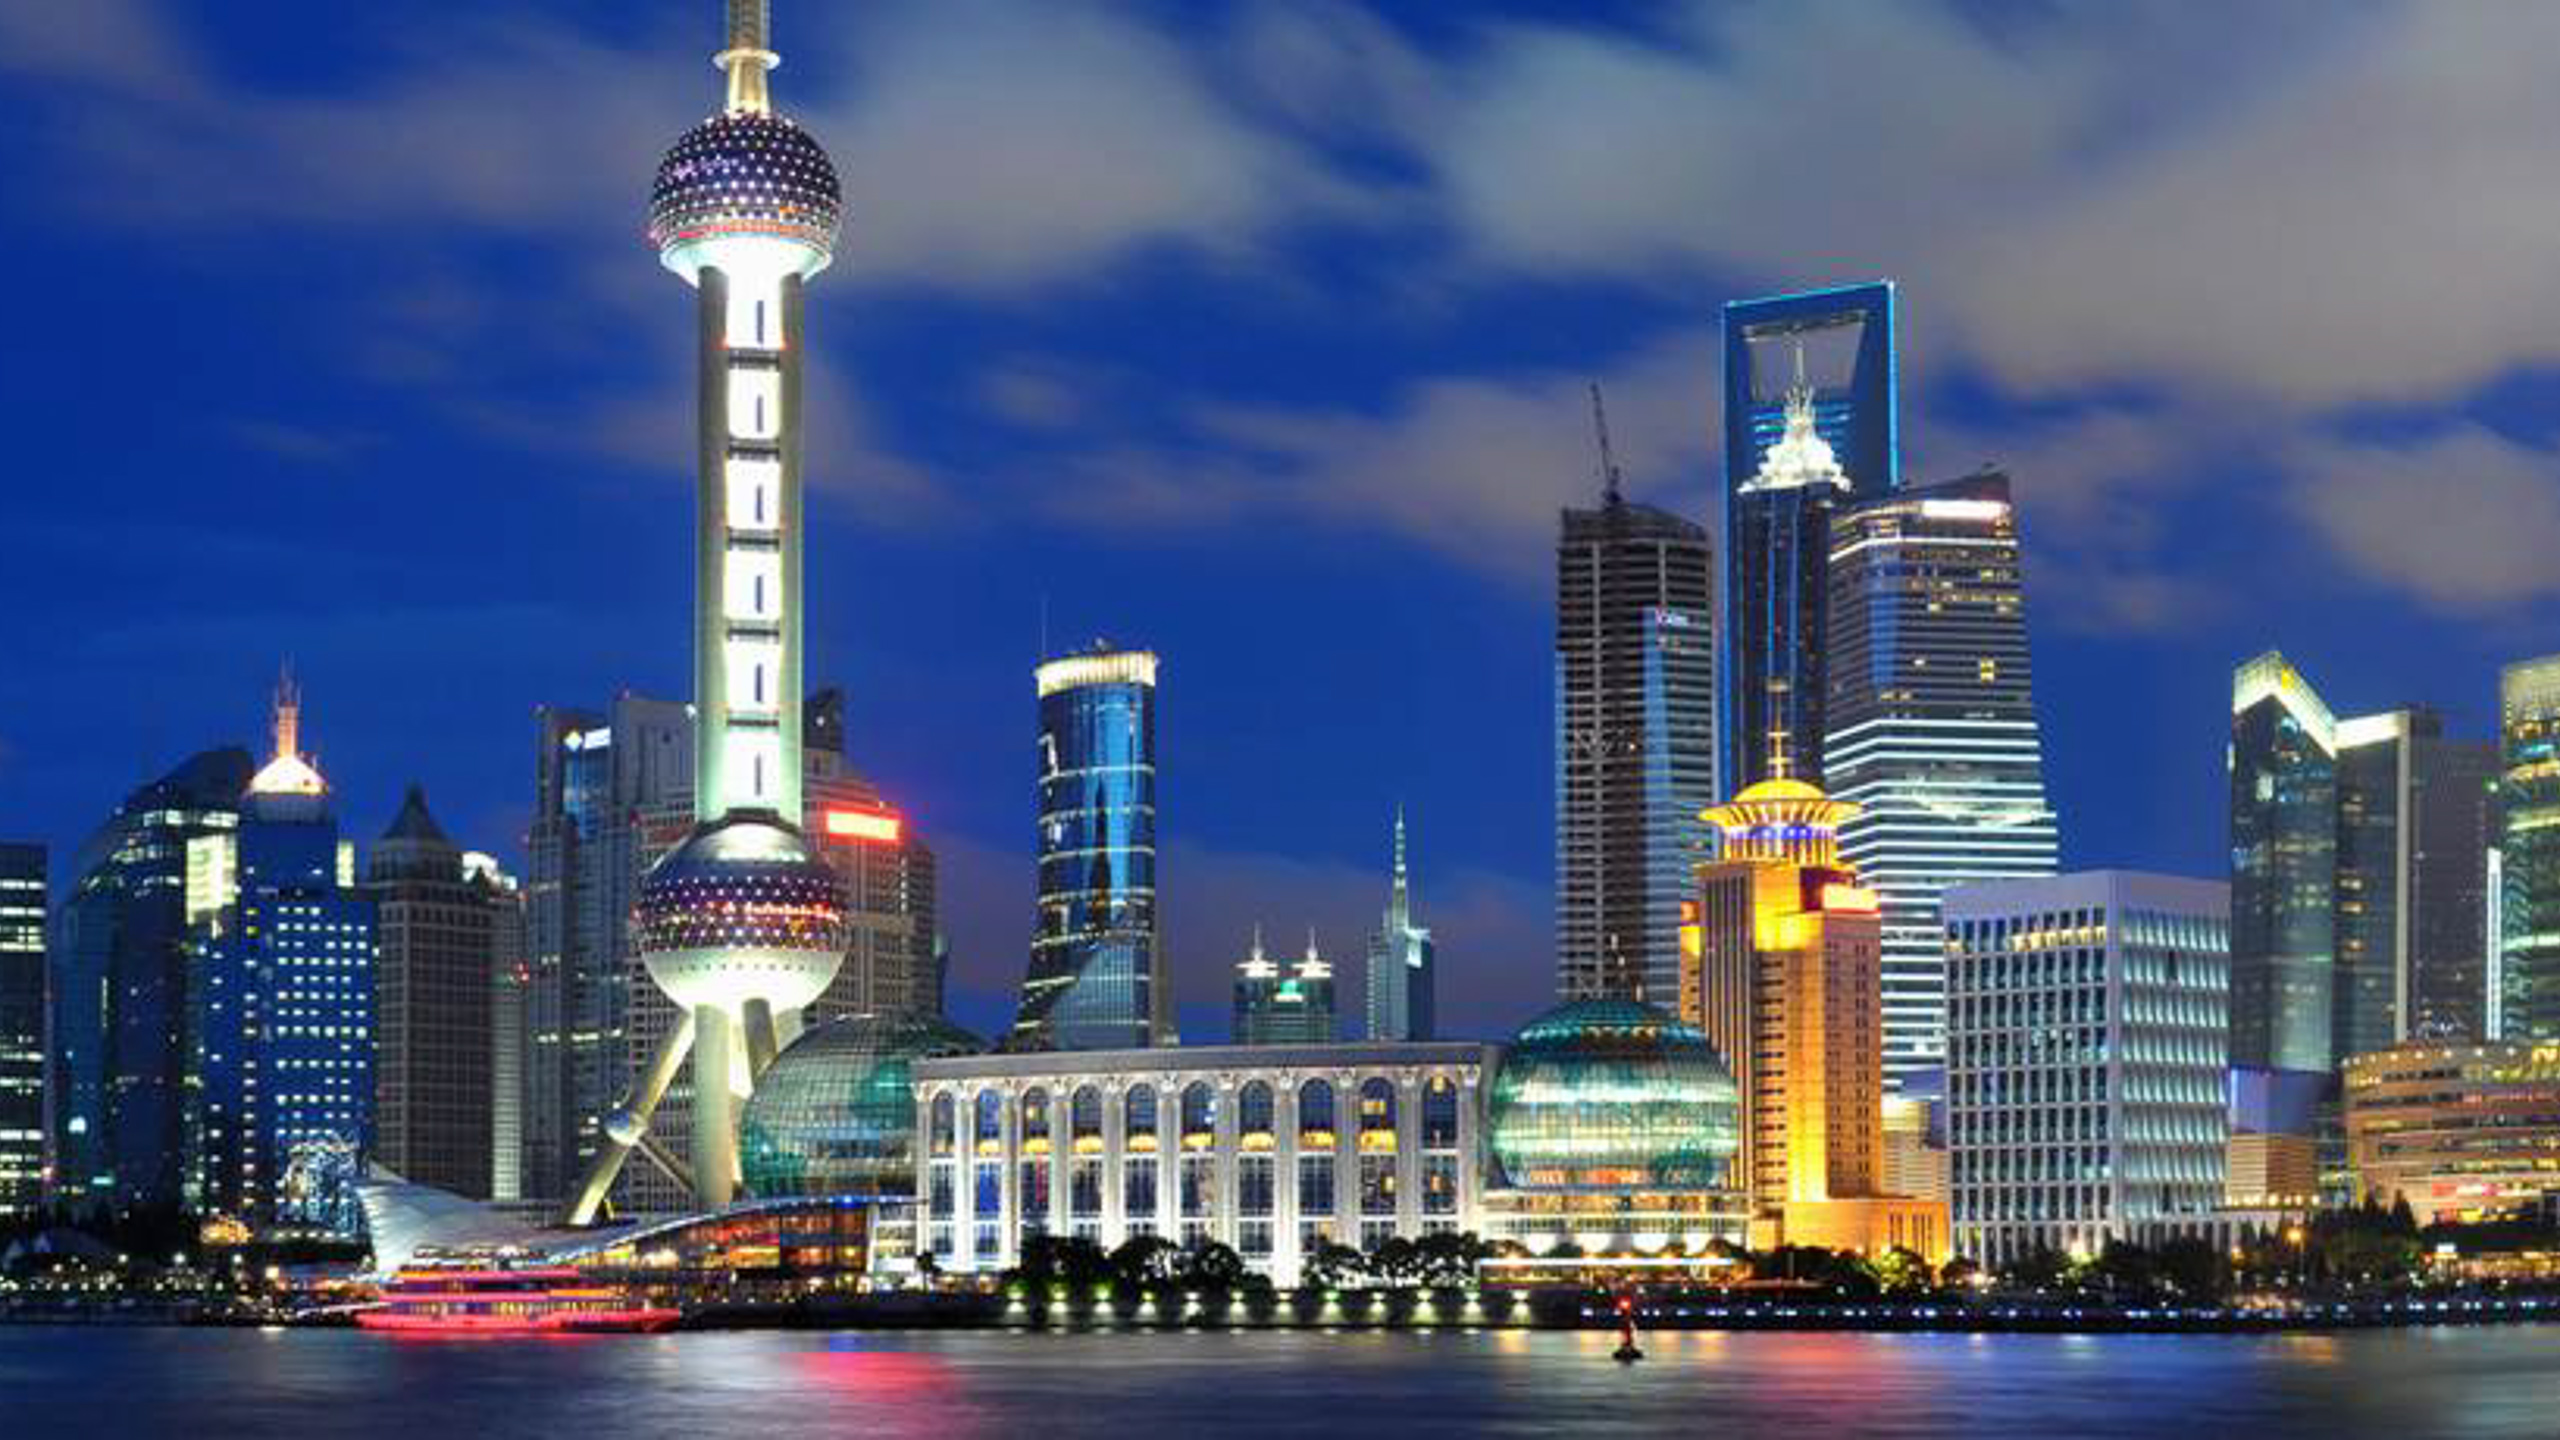 The Shanghai skyline at night with A&K